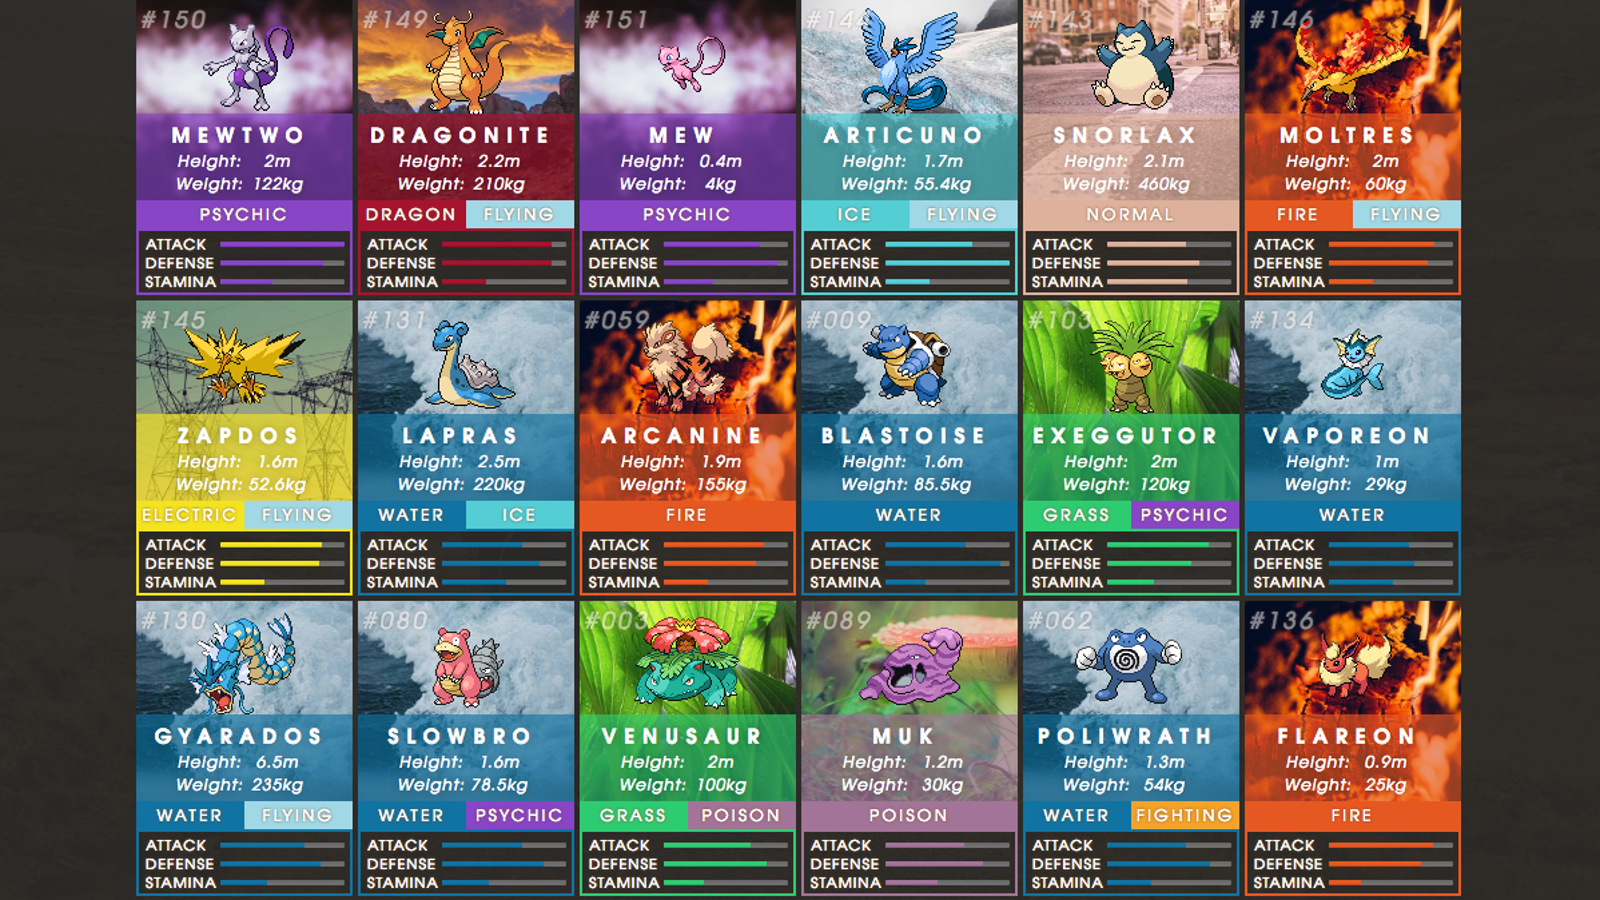 Hundreds Team Up to Figure Out Which Pokémon Go Monsters Are the Strongest